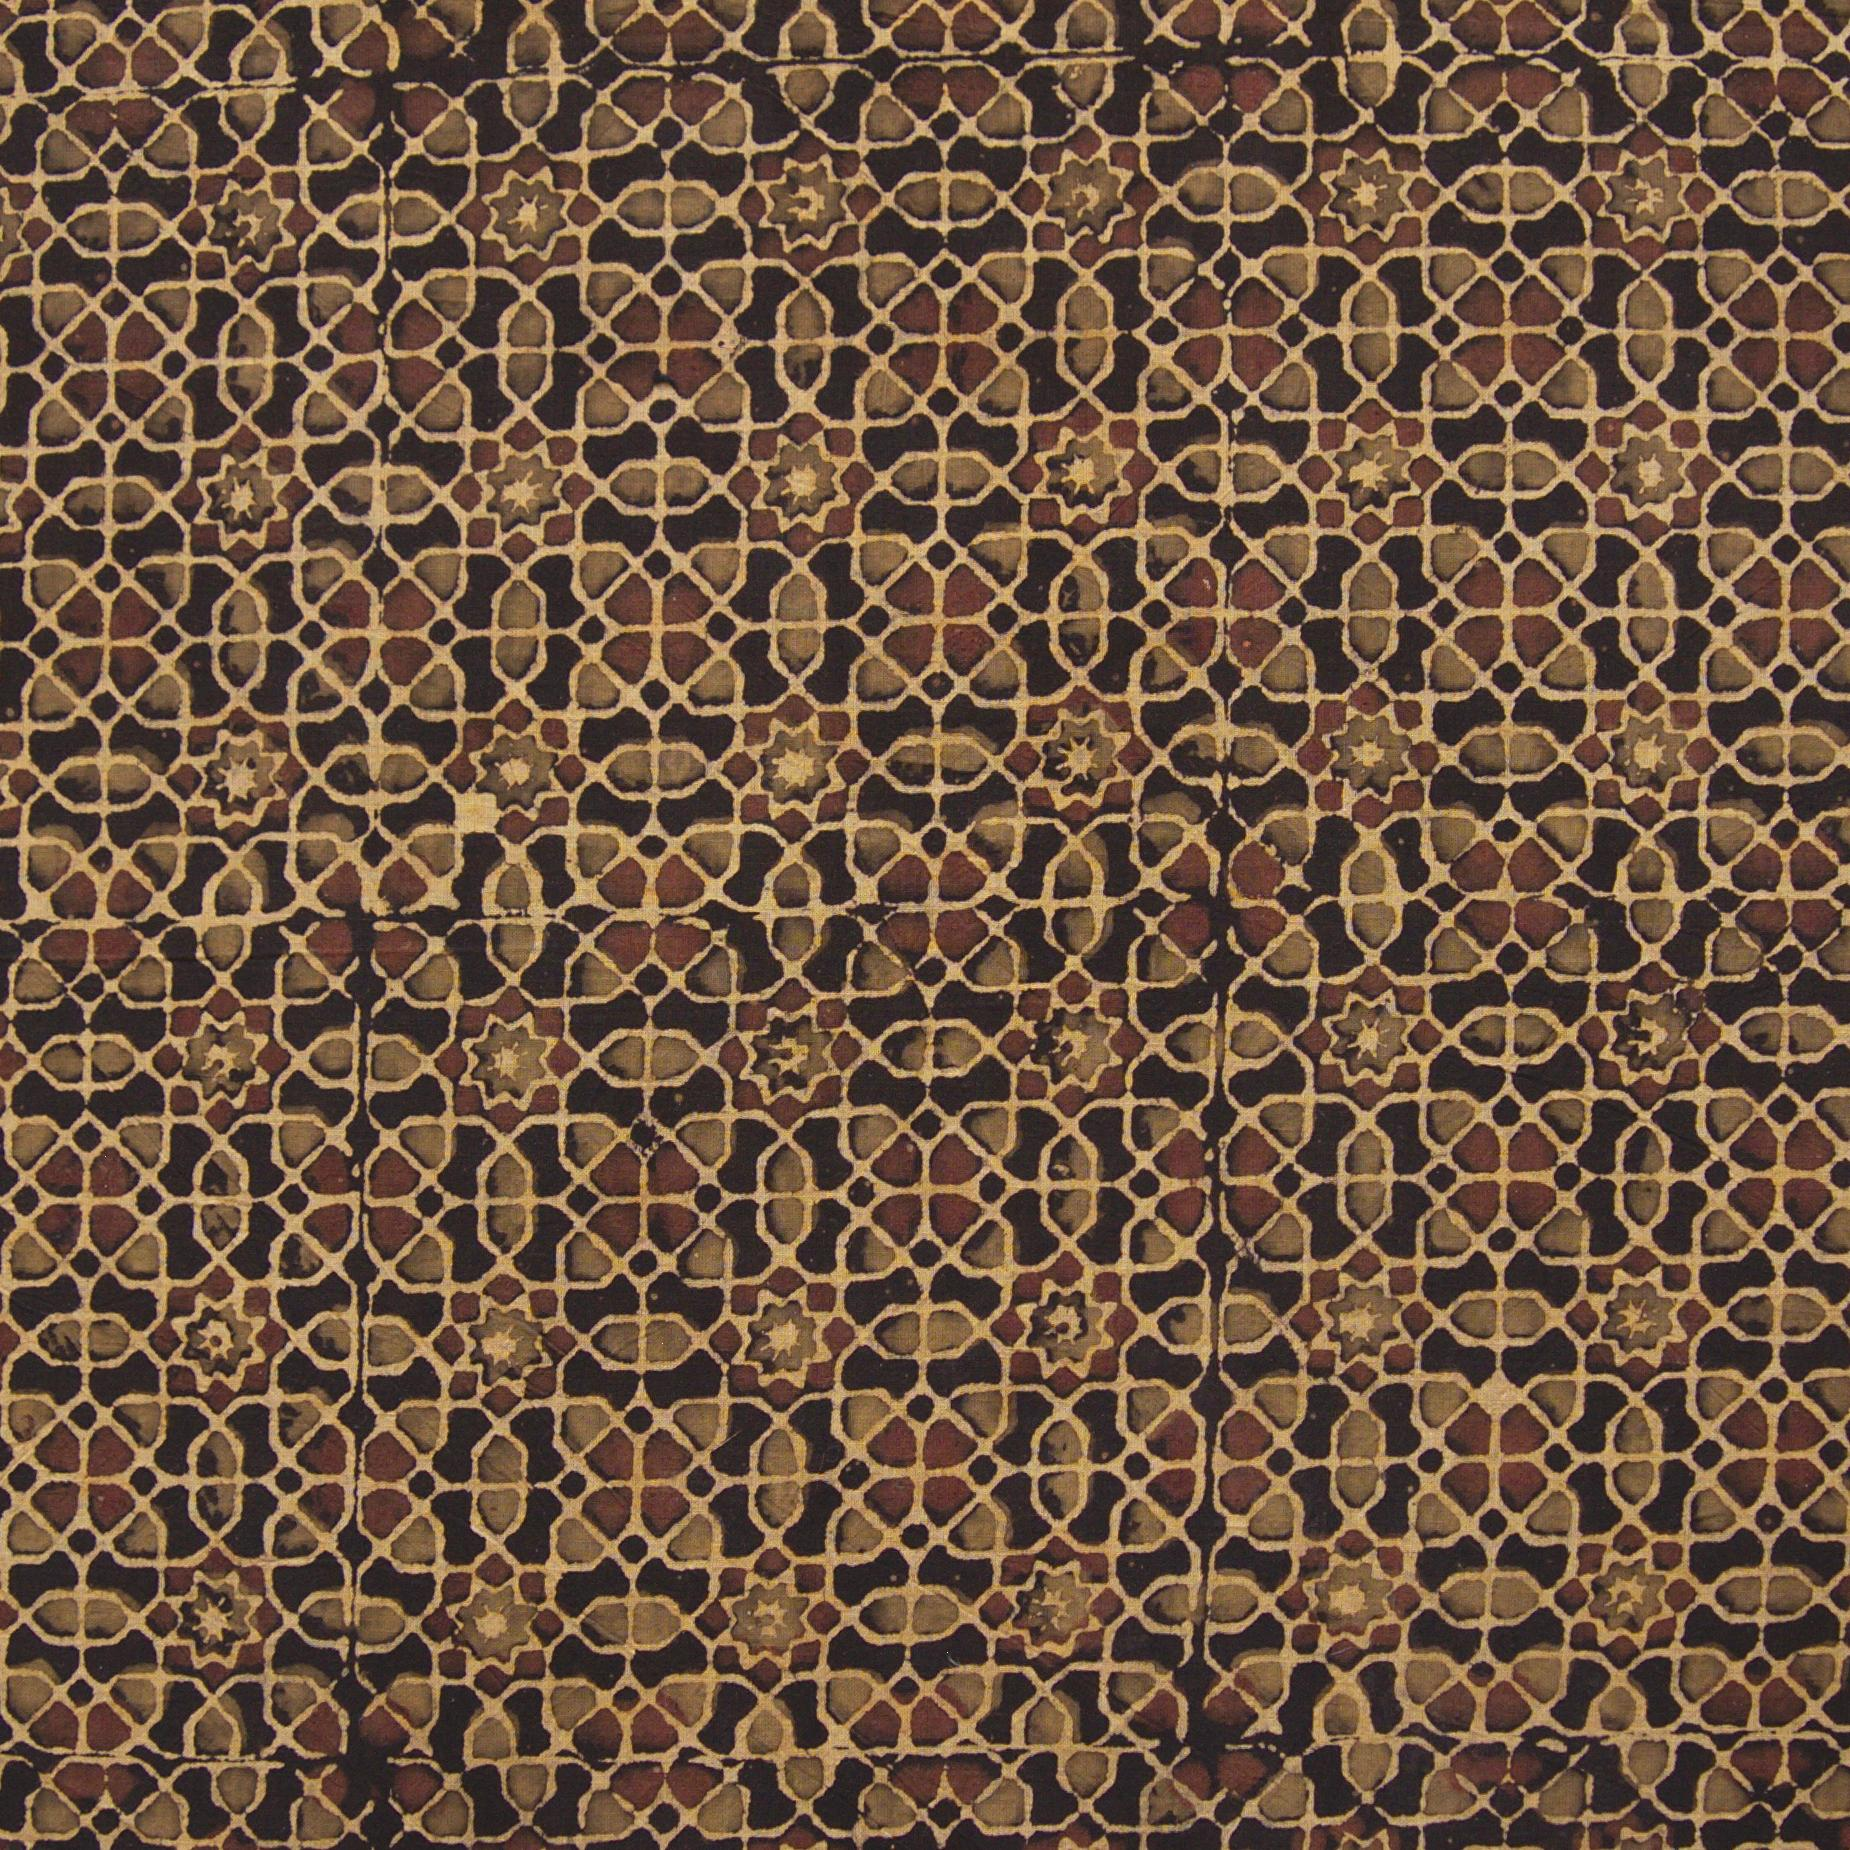 Block Printed Fabric, 100% Cotton, Ajrak Design: Iron Black Base, Green, Coffee Brown Octagon. Close Up